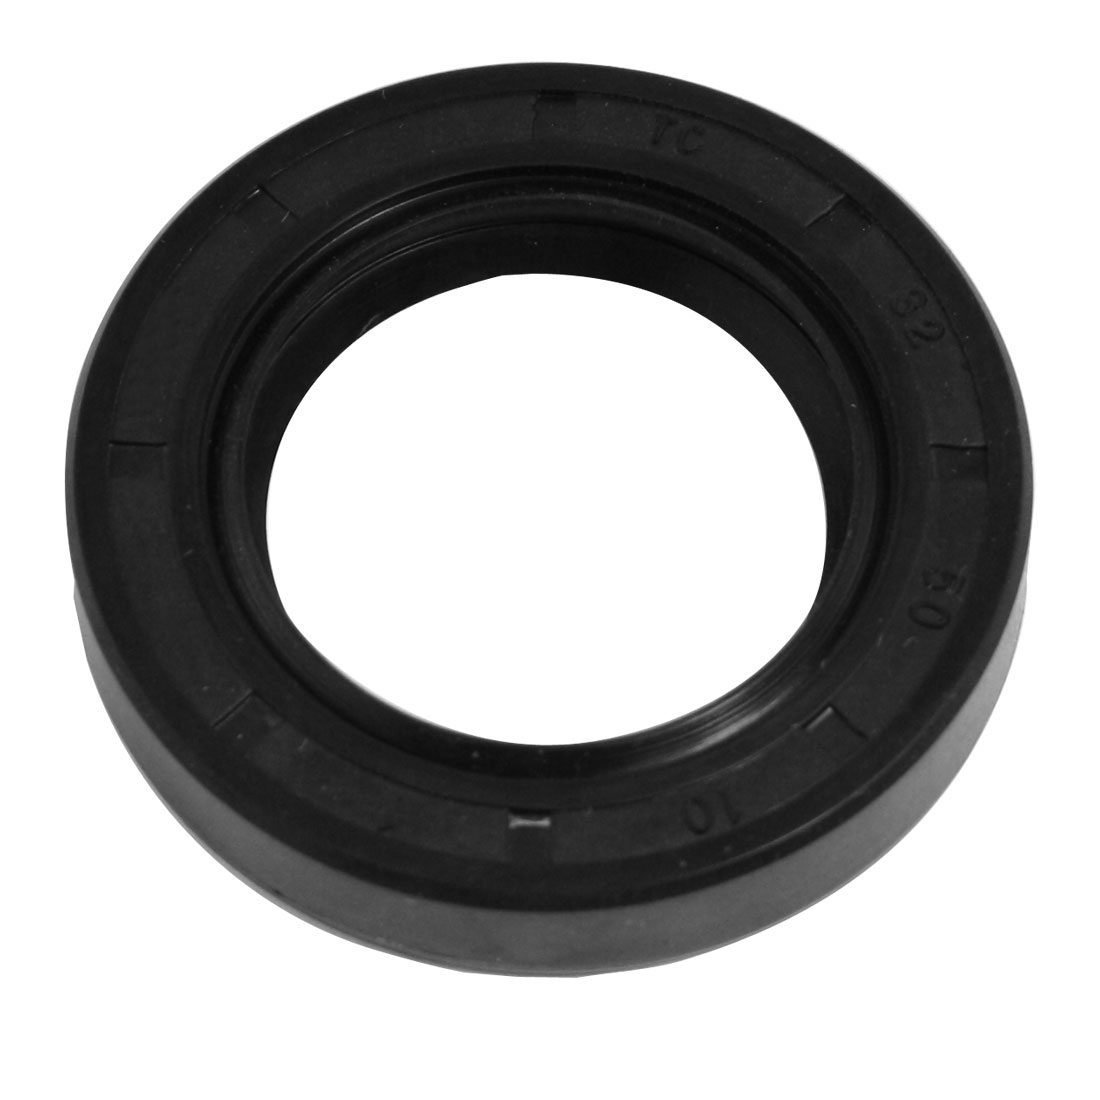 Steel Spring TC Double Lip Oil Shaft Seal 32mm x 50mm x 10mm